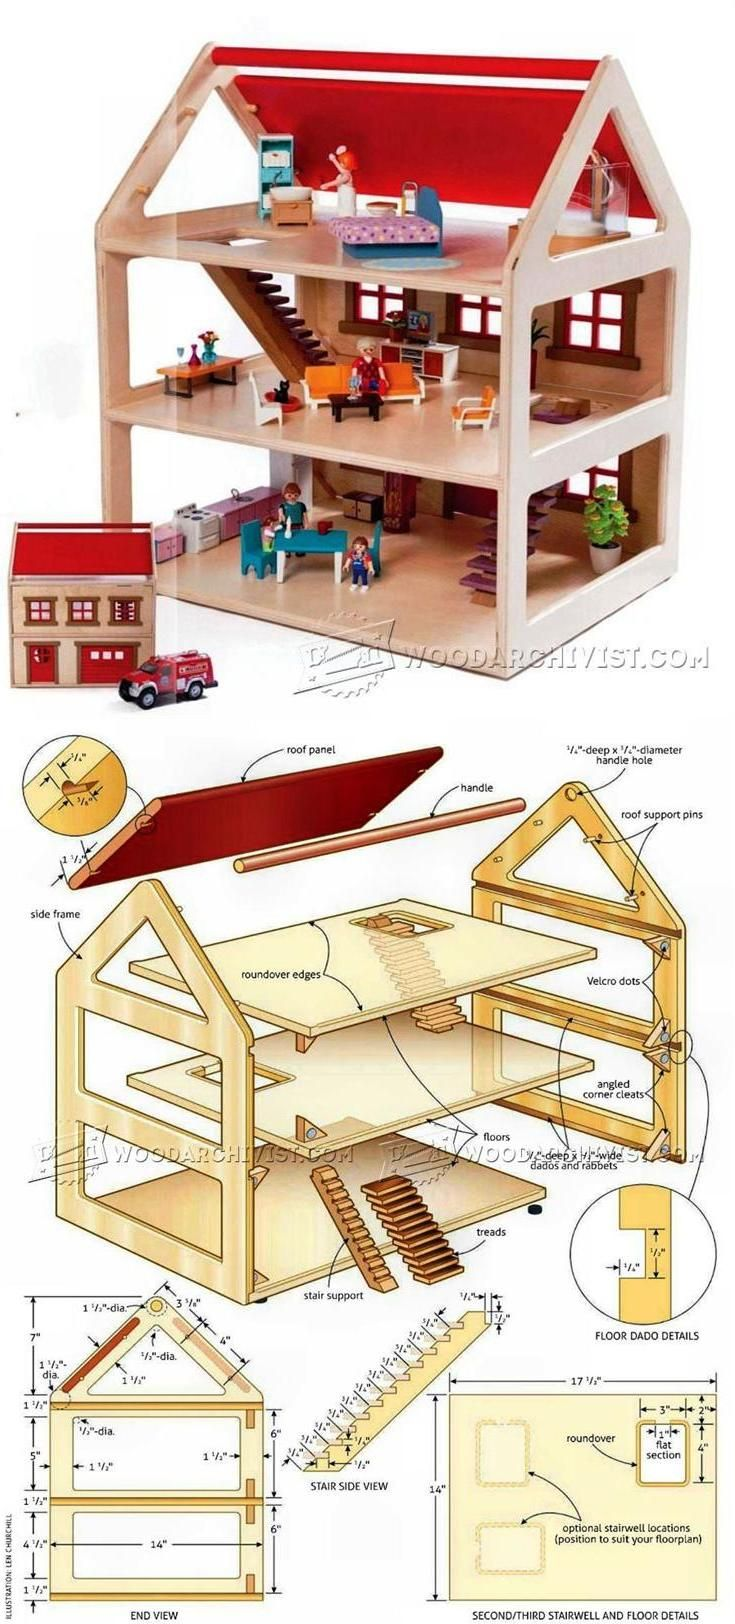 17 best images about wooden toy plans on pinterest House projects plans